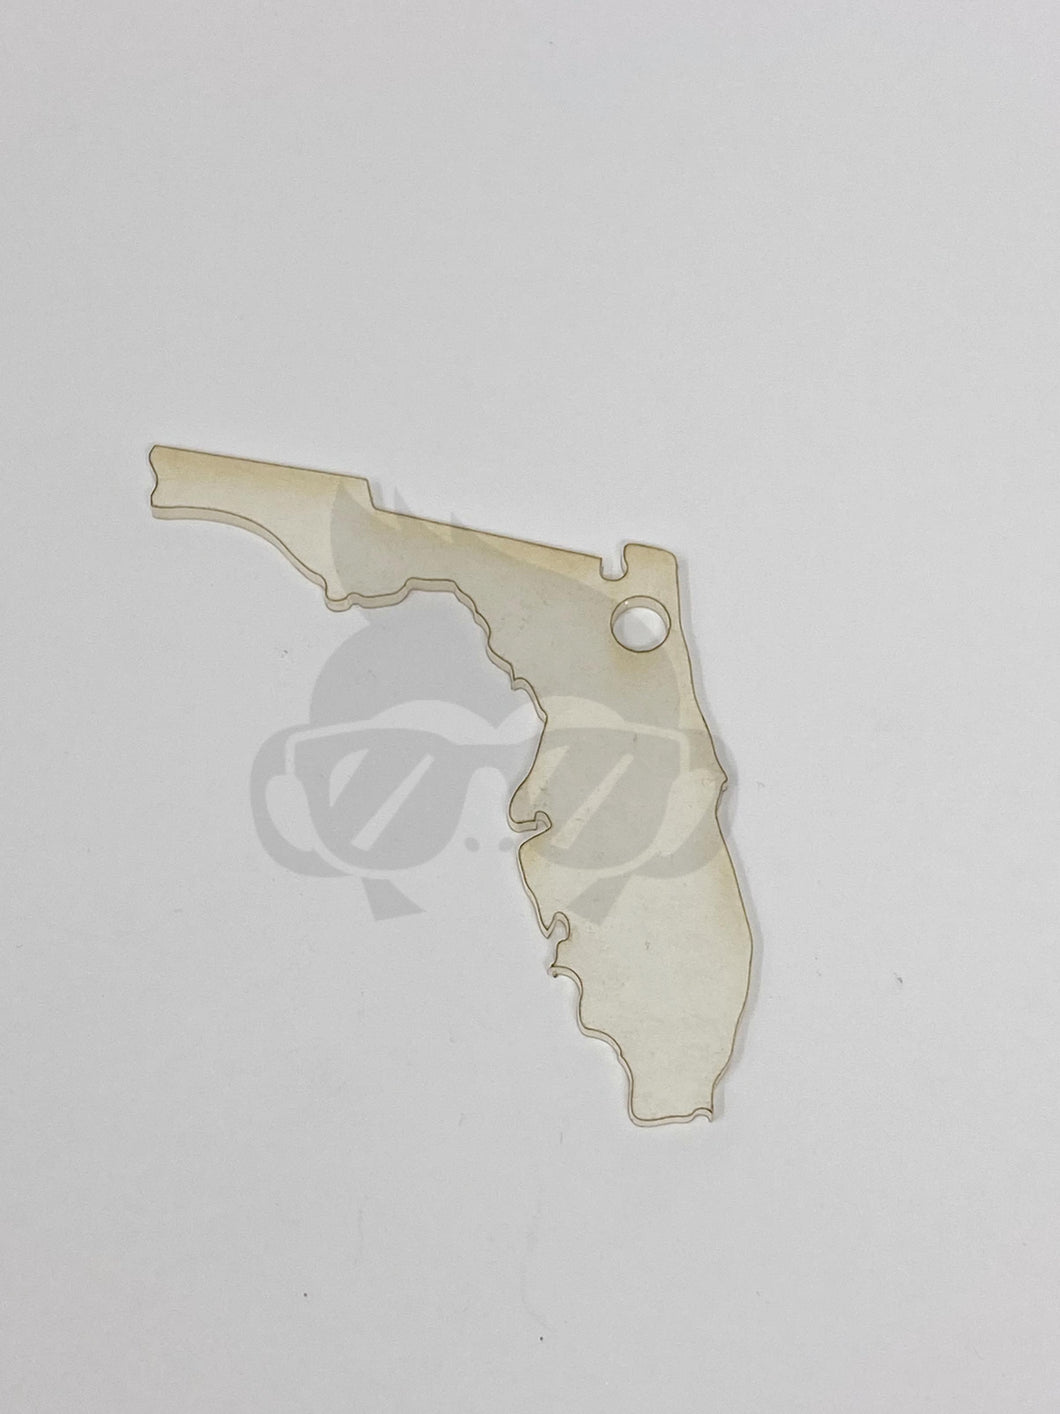 Acrylic Florida Shaped Key Chain